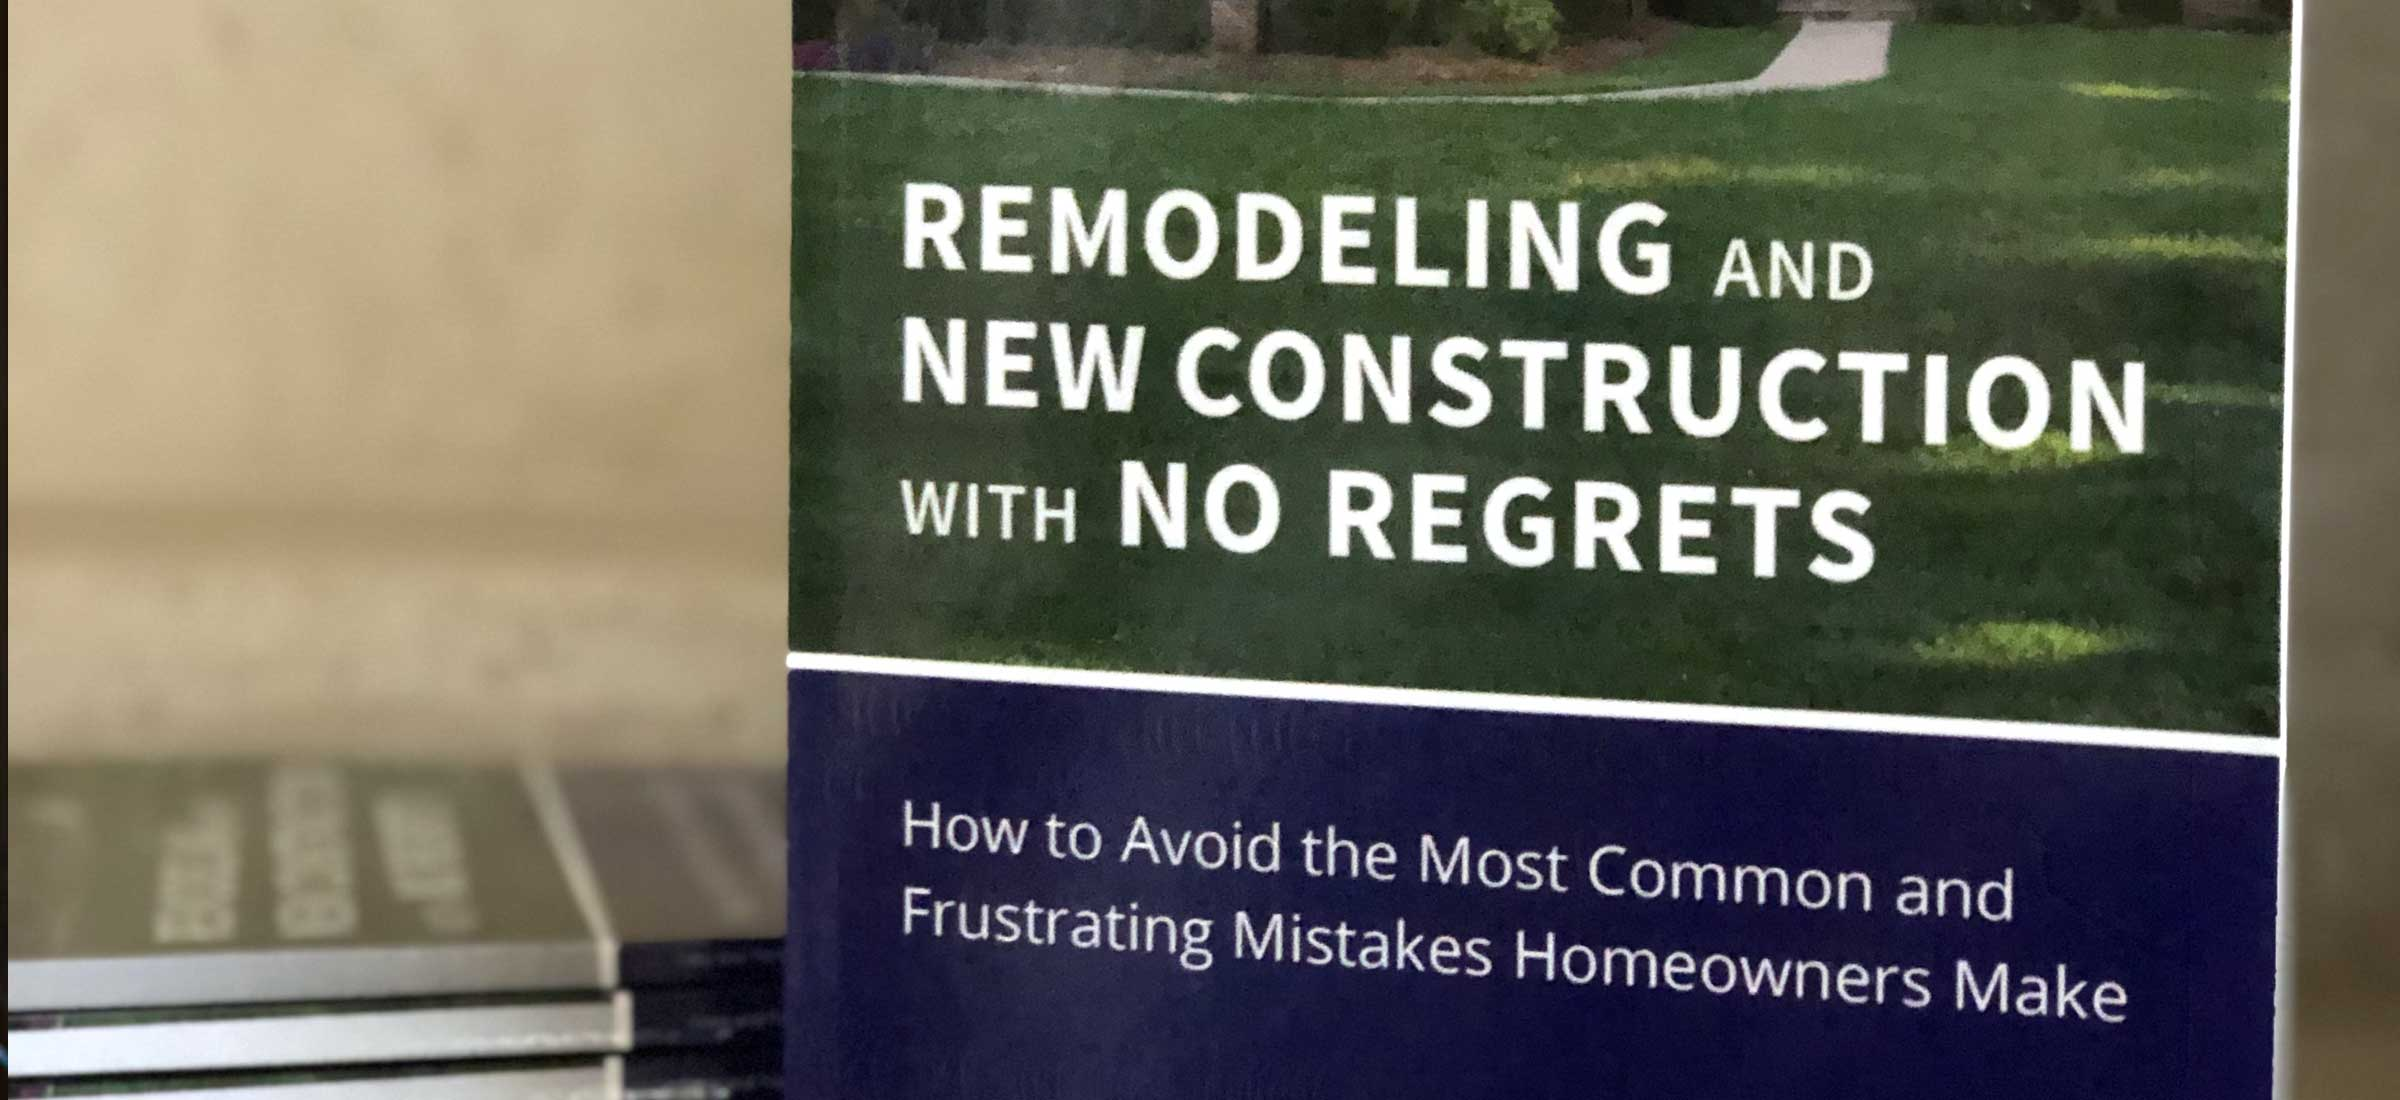 Remodeling and New Construction with No Regrets